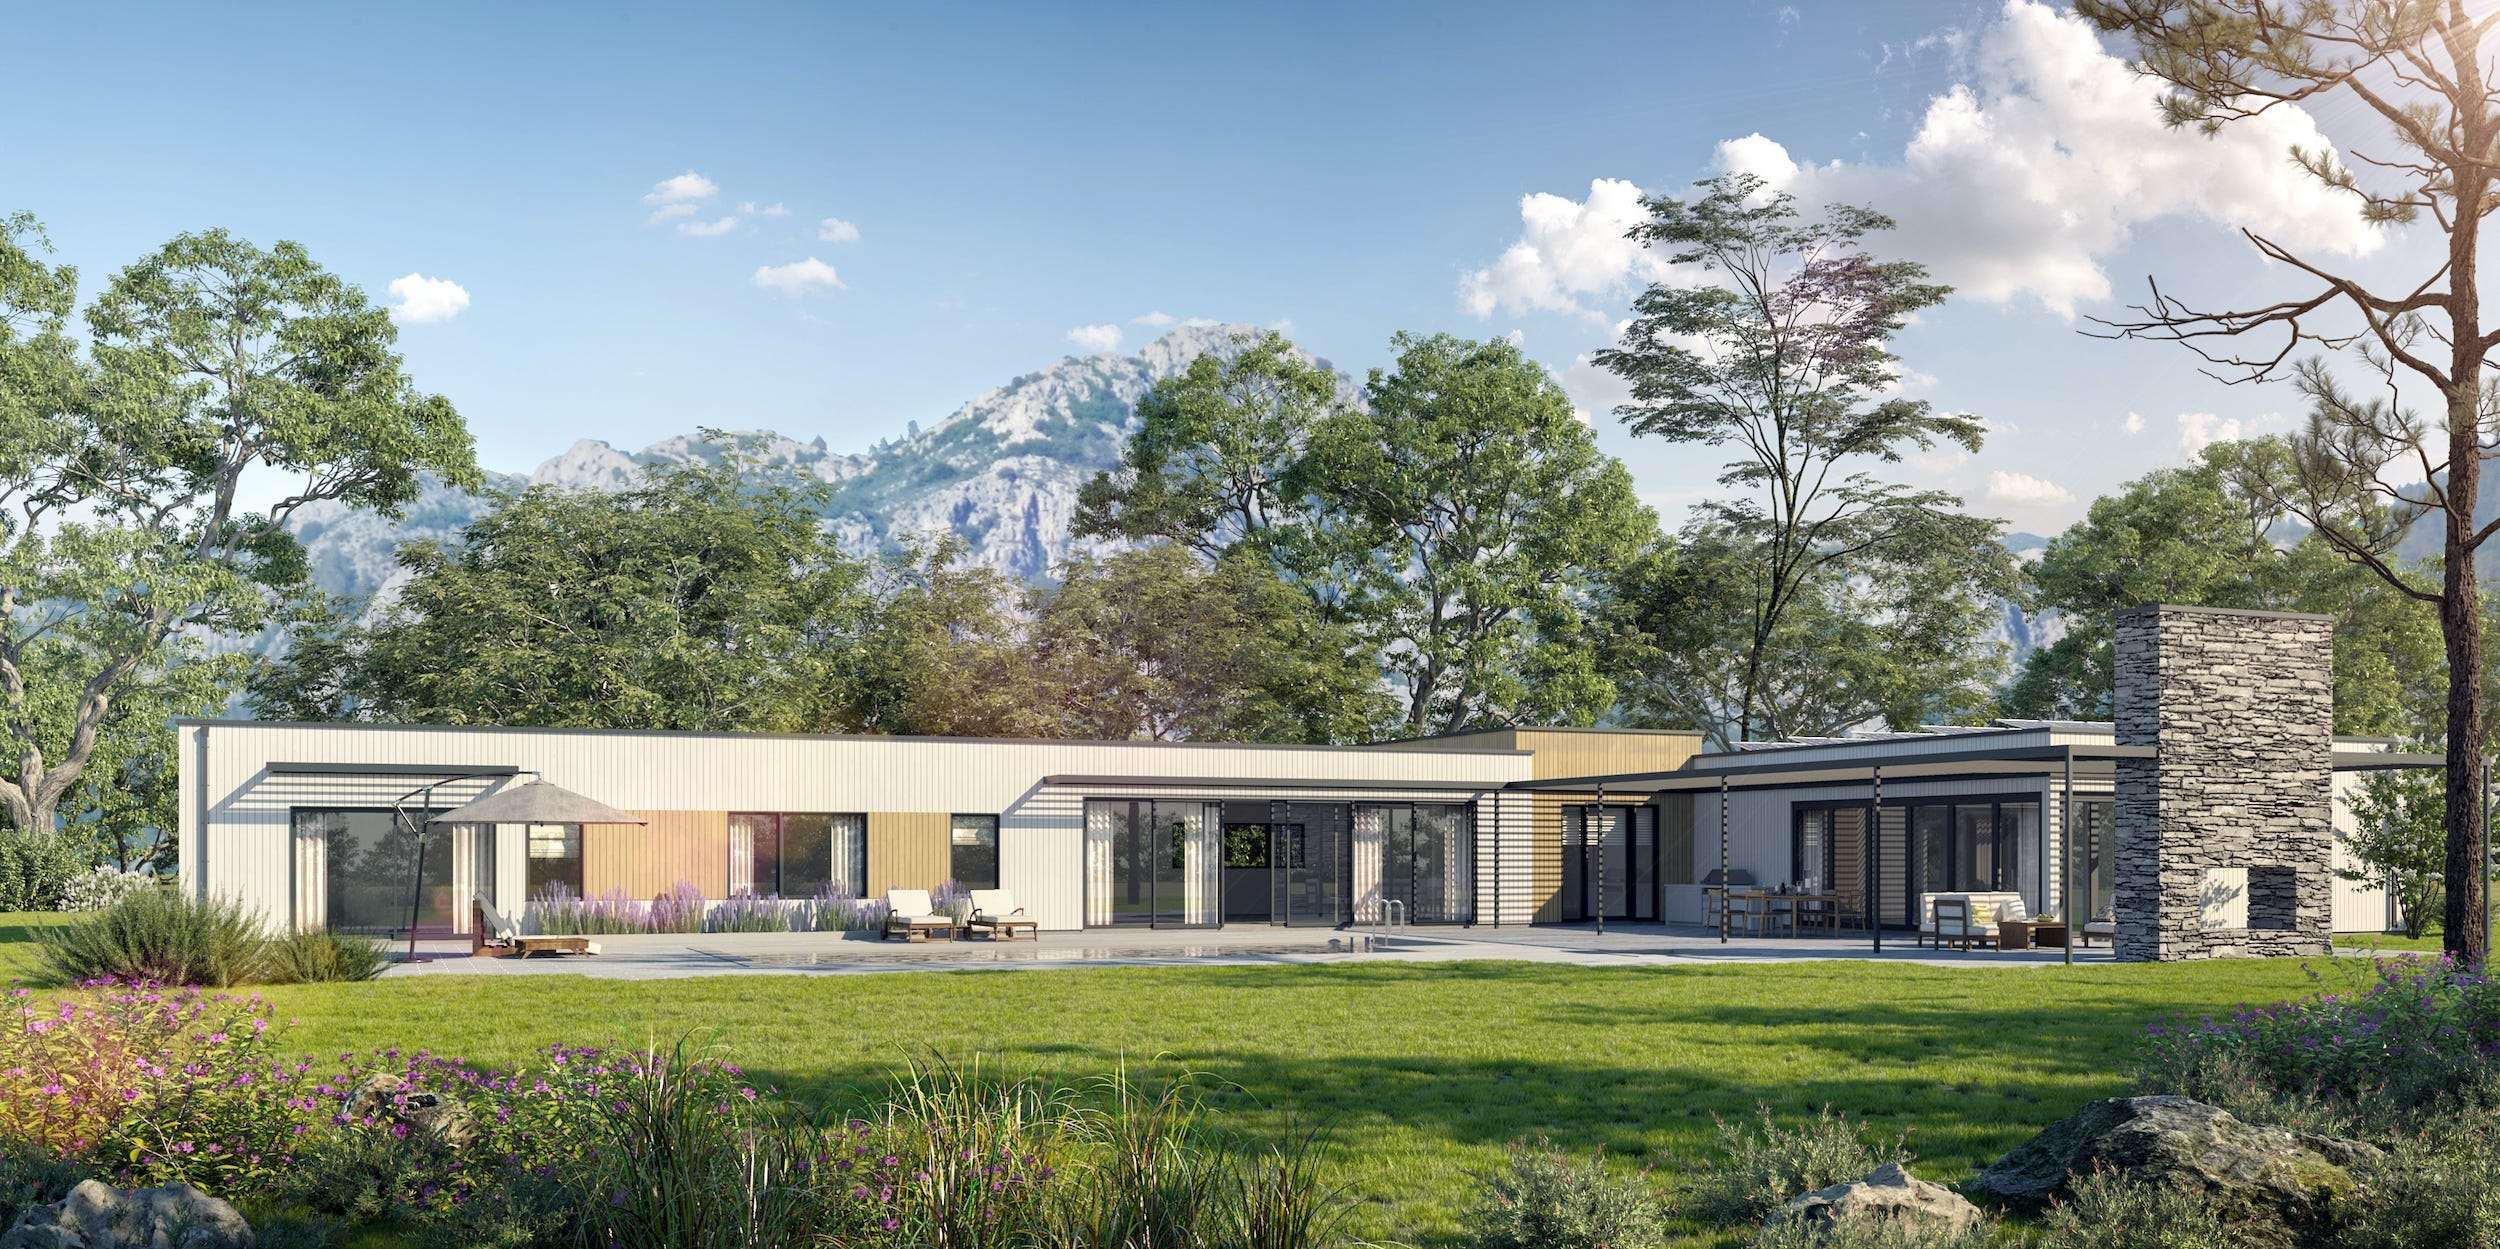 A company that makes $600,000 prefab smart homes got so popular in 2020 it had to turn away customers  - see inside its 3 new homes